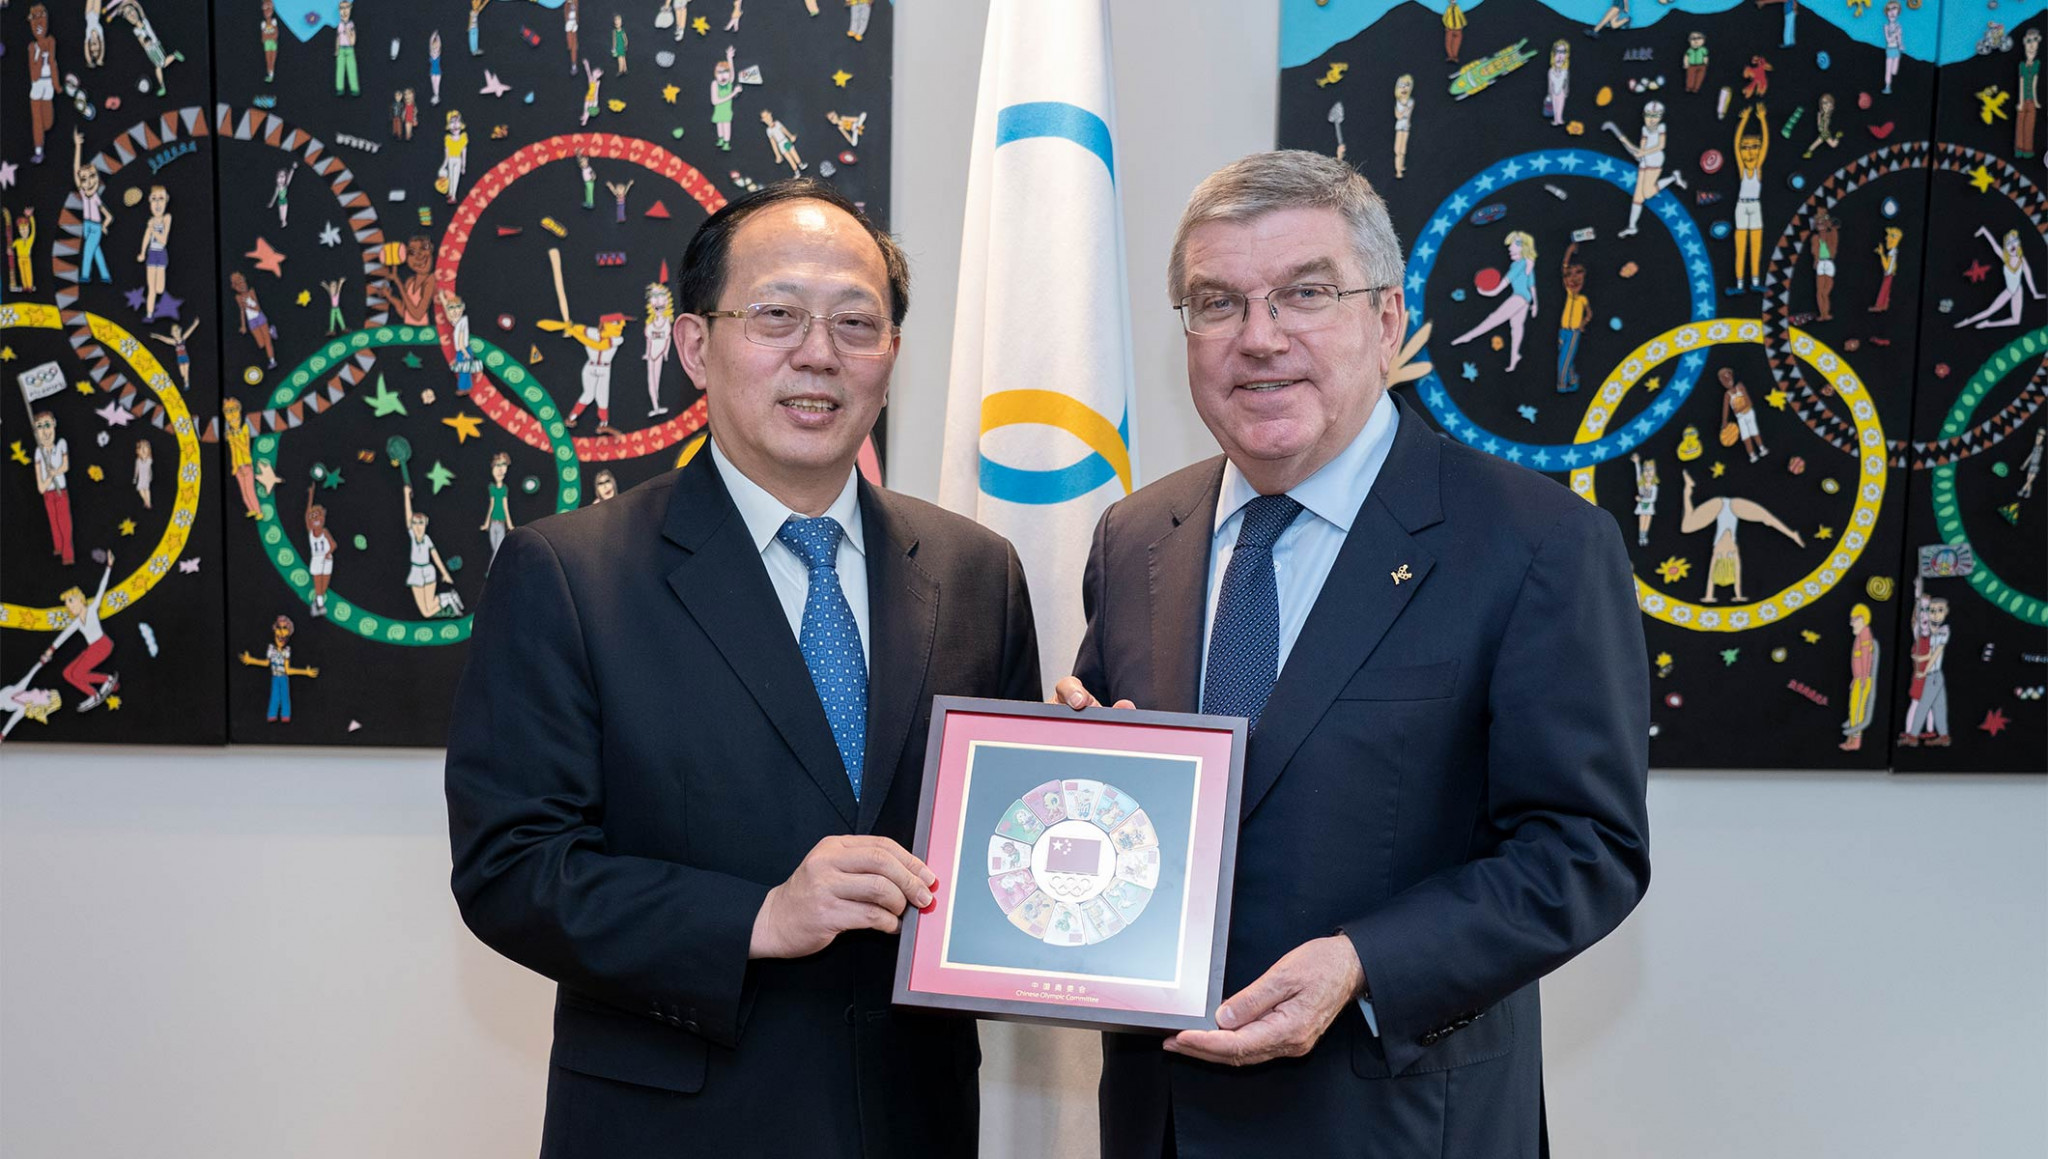 Gou Zhongwen, left, opened the new offices with IOC President Thomas Bach ©IOC